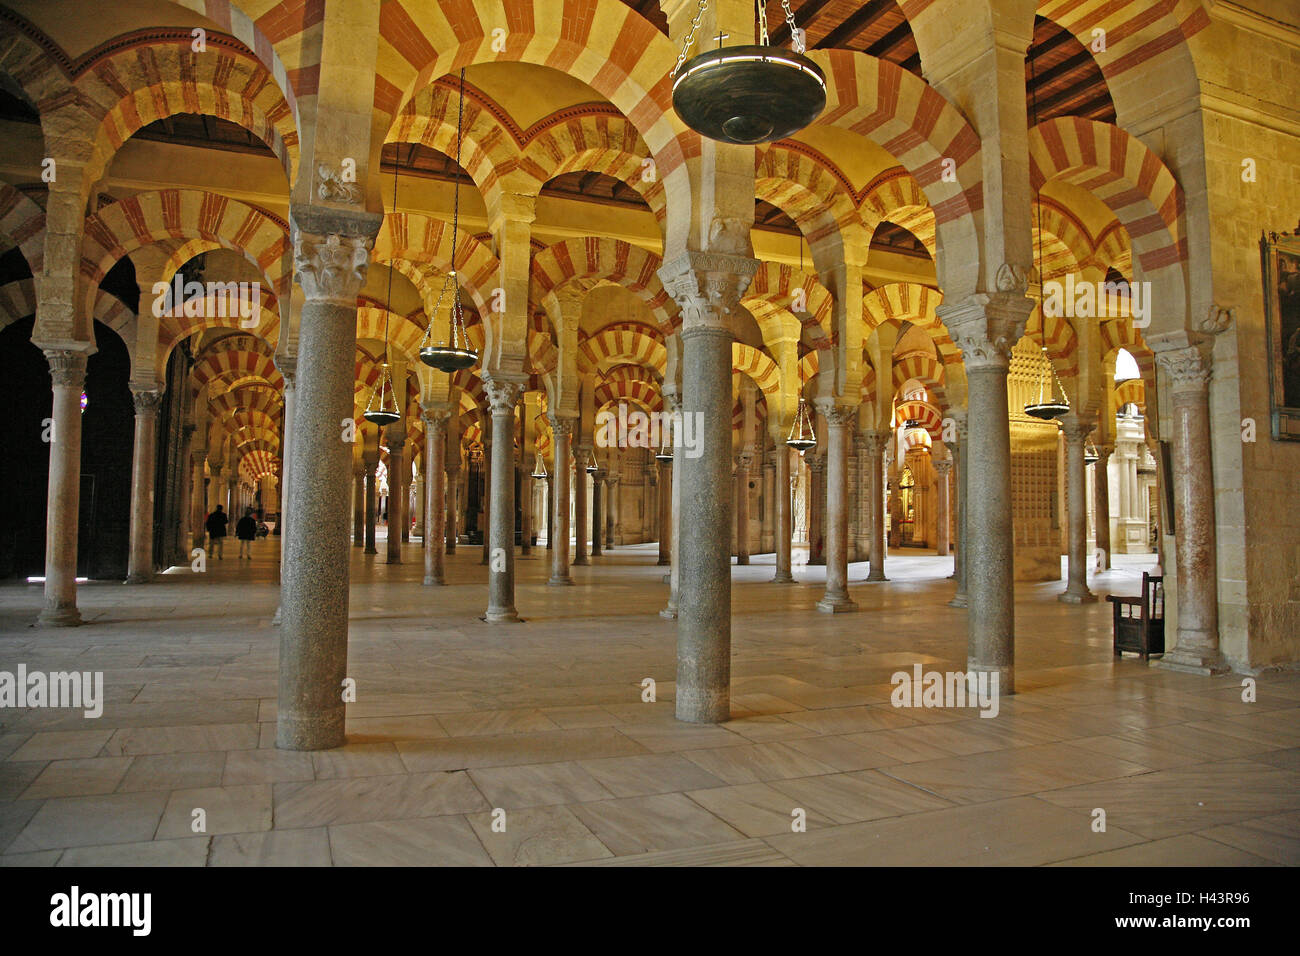 856 Stock Photos 856 Stock Images Alamy # Andre Kevin Muebles Cordoba